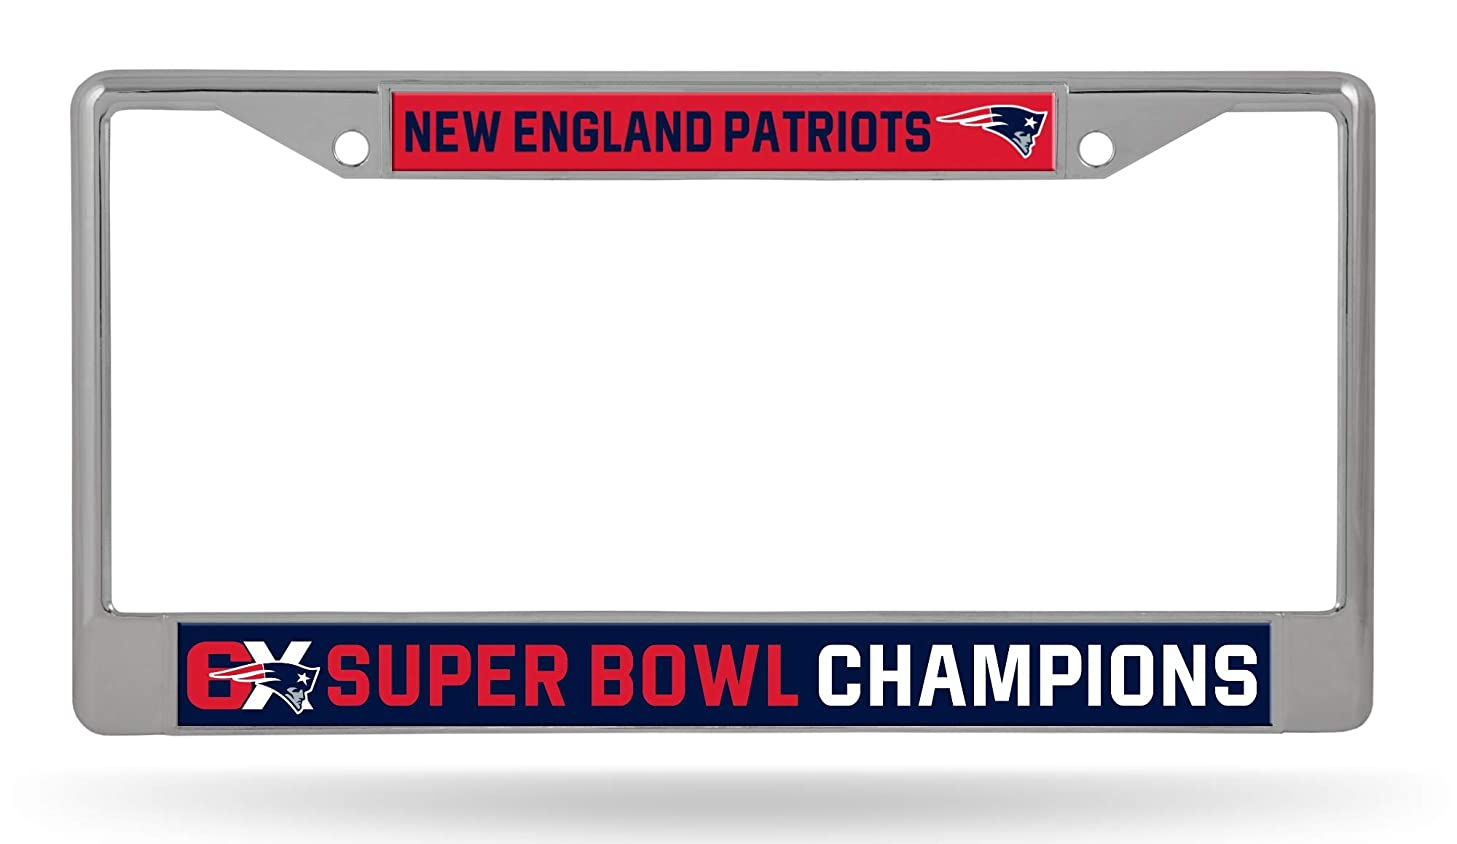 Rico Industries, Inc. New England Patriots 6X Super Bowl Champions Chrome Frame License Plate Cover